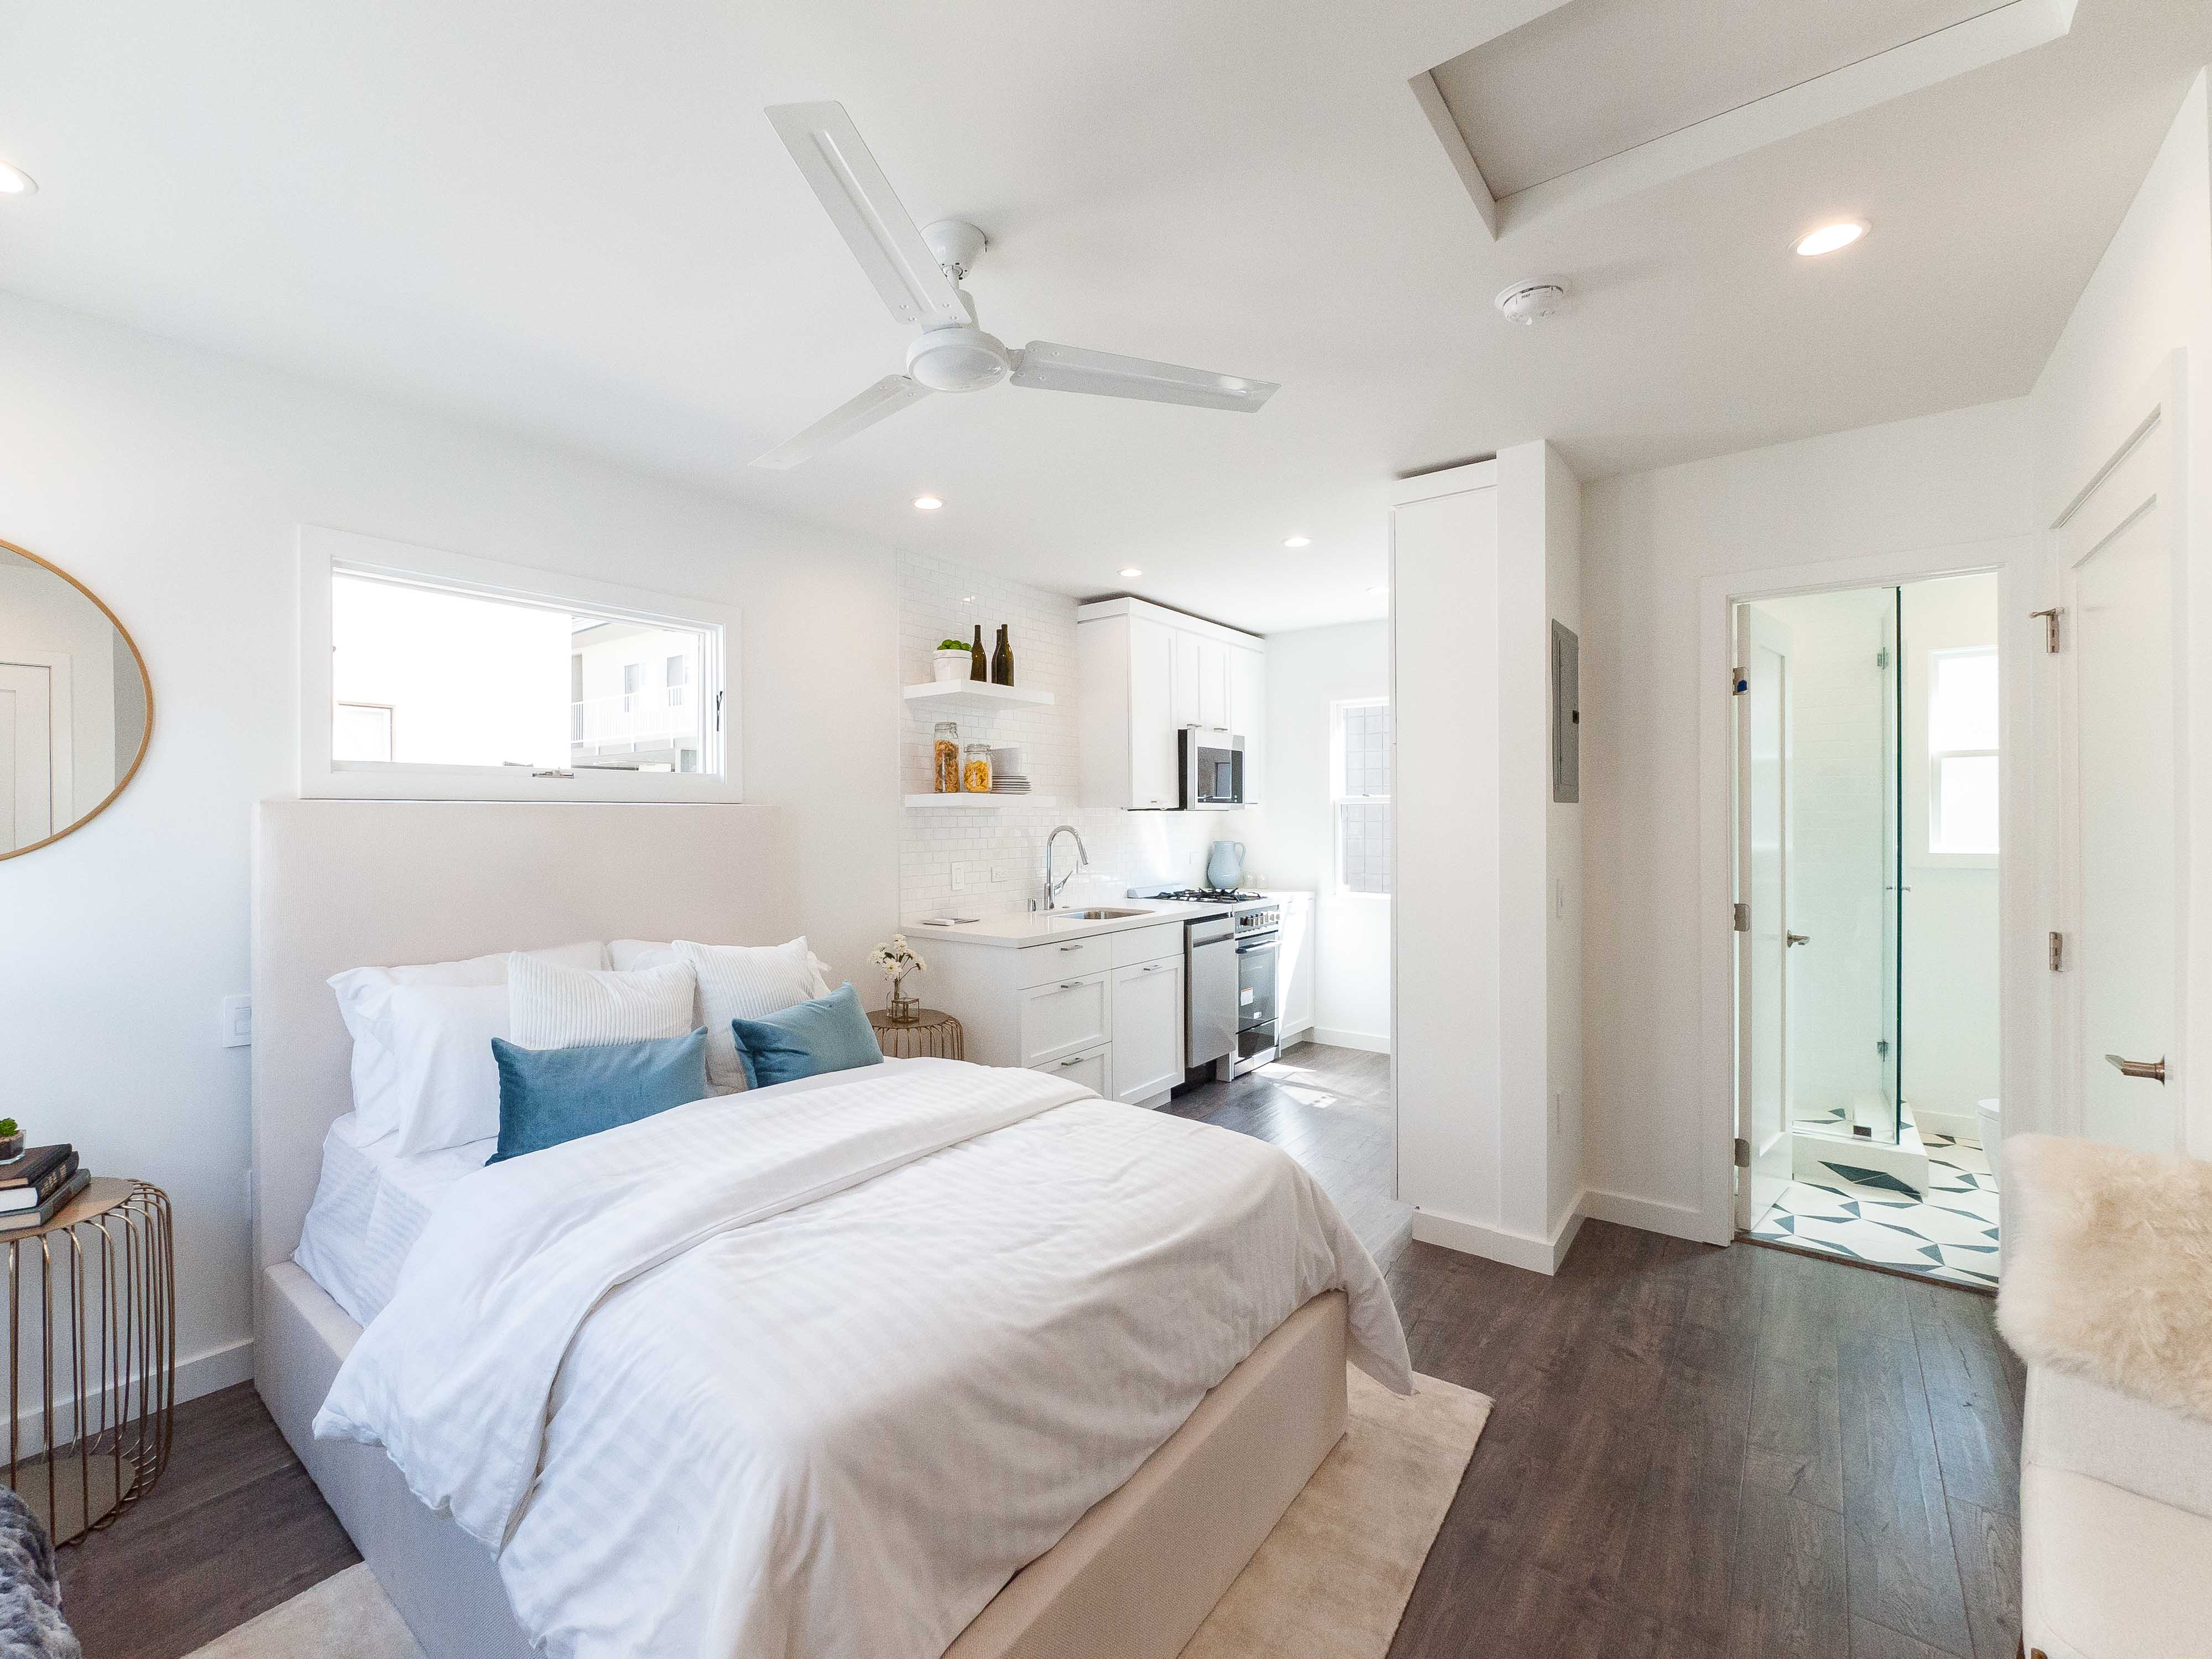 Completely Remodeled Beachy Bungalows In Belmont Shores | Sleek Studios | Across the street from Rosie's Dog Beach